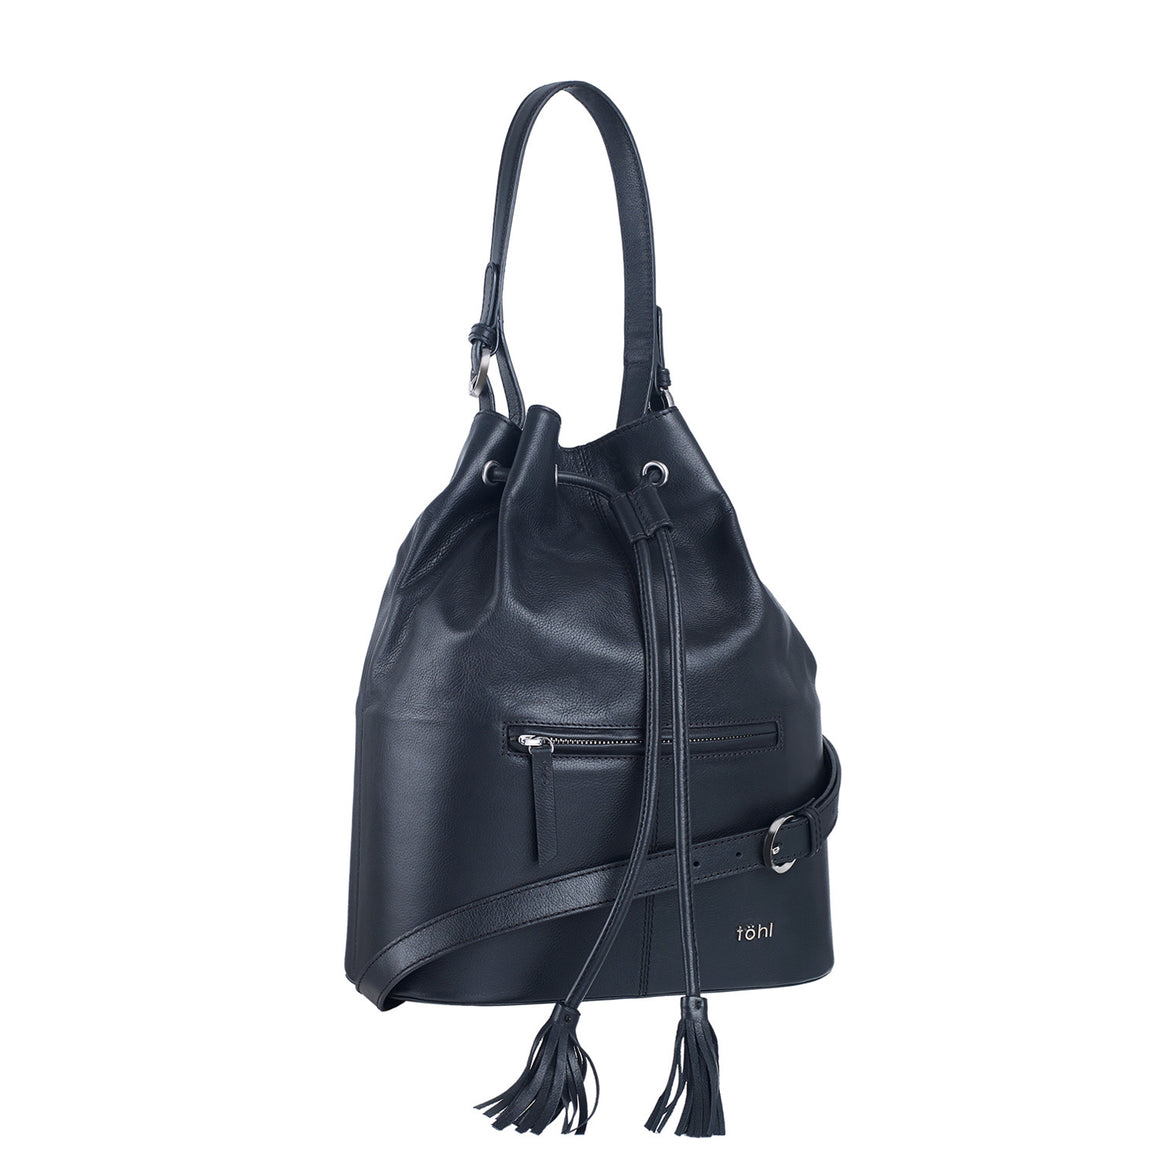 SB 0015 - TOHL NUSA WOMEN'S SHOULDER BAG - CHARCOAL BLACK